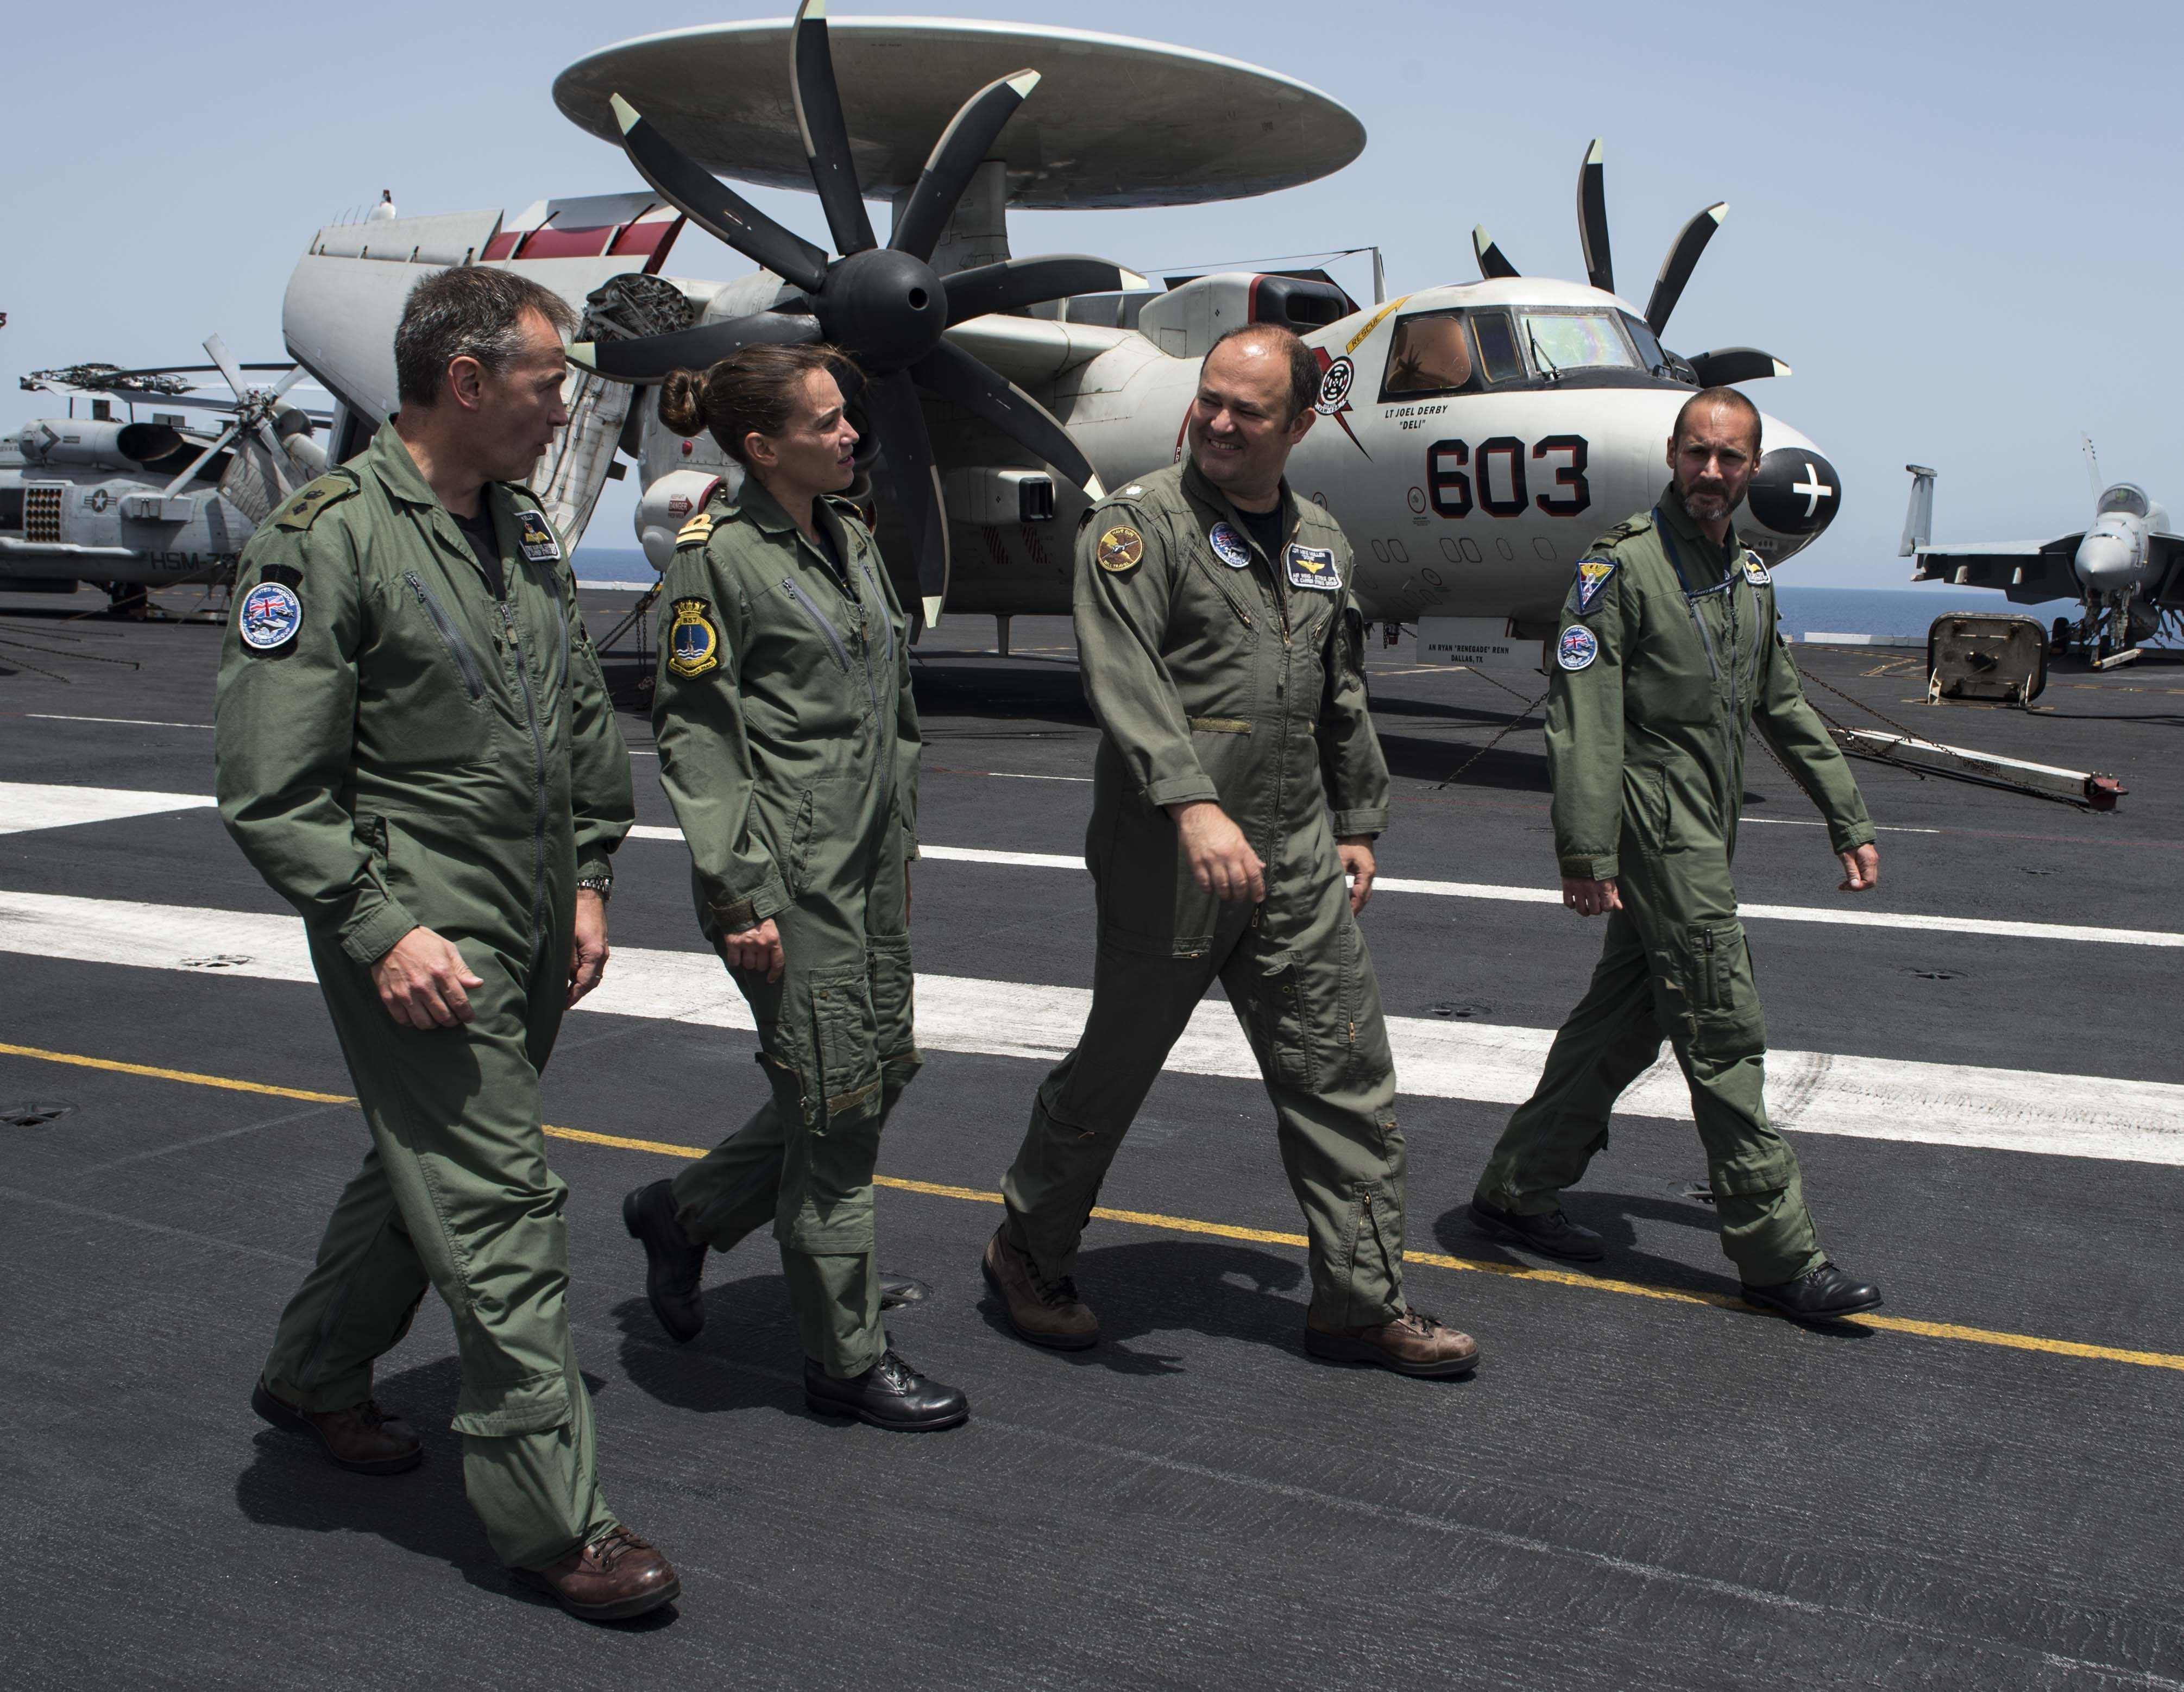 170721-N-AJ467-184 MEDITERRANEAN SEA (July 22, 2017) Officers from the U.K. Carrier Strike Group Staff tour the flight deck of the aircraft carrier USS George H.W. Bush (CVN 77). The officers are embarked in preparation for Exercise Saxon Warrior, a keystone exercise as the U.K. prepares for the arrival of the HMS Queen Elizabeth. The GHWB and its carrier strike group are conducting naval operations in the U.S. 6th Fleet area of operations in support of U.S. national security interests in Europe and Africa. (U.S. Navy photo by Mass Communication Specialist Seaman Darien Weigel/Released)